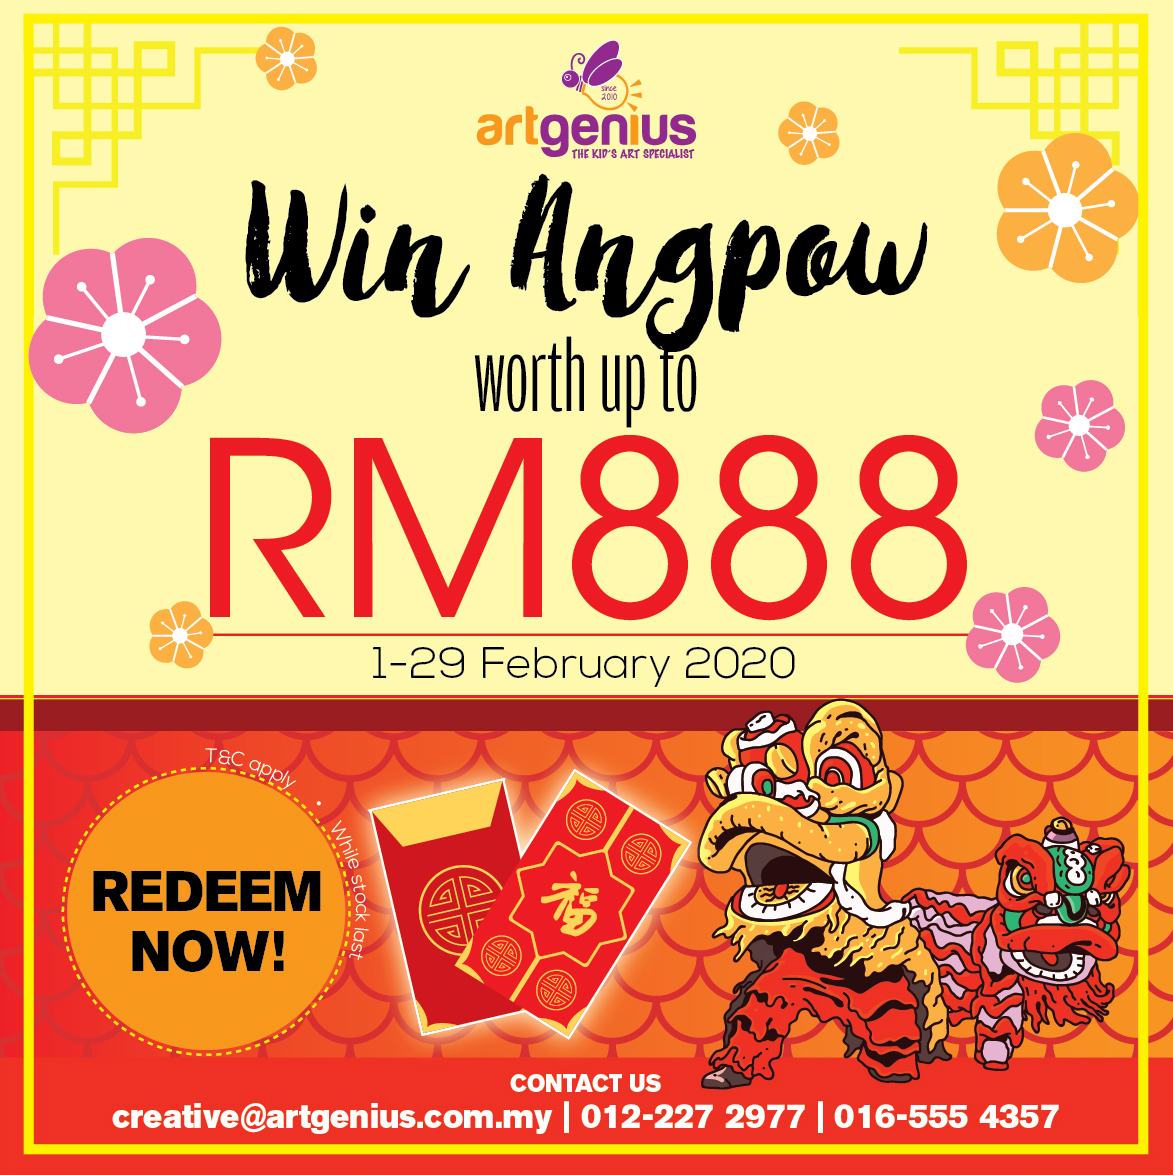 Free Angpow Worth Total of RM888